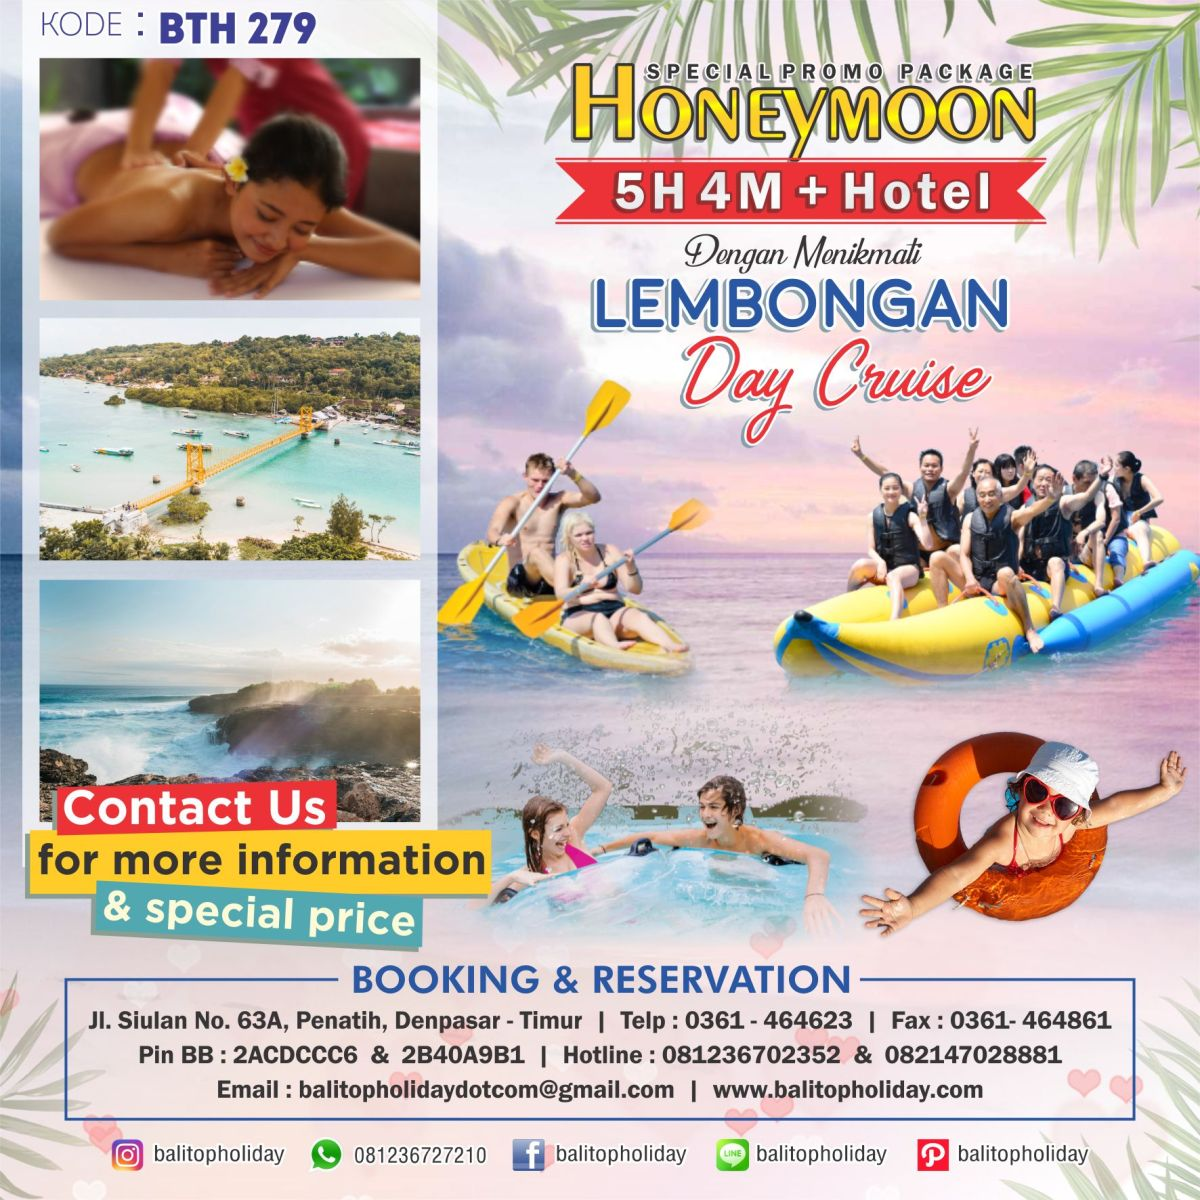 Paket Honeymoon 5 Hari 4 Malam (OPSI A) + Lembongan Day Cruise BTH 279